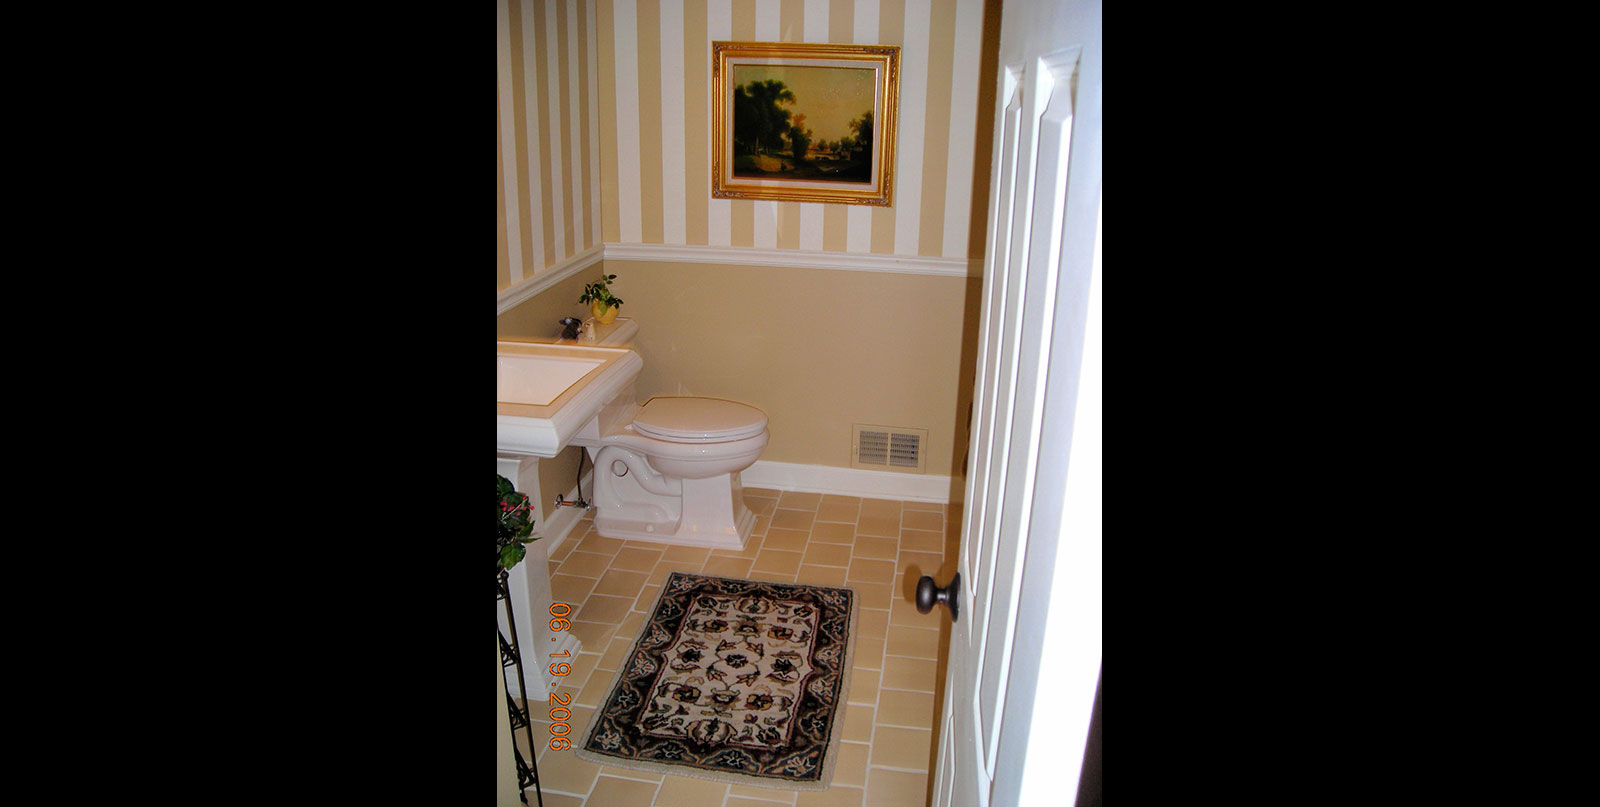 Covenant Construction Group - Bathroom Remodel, Half Bathroom with Room Design and Custom Tile - Ann Arbor, MI